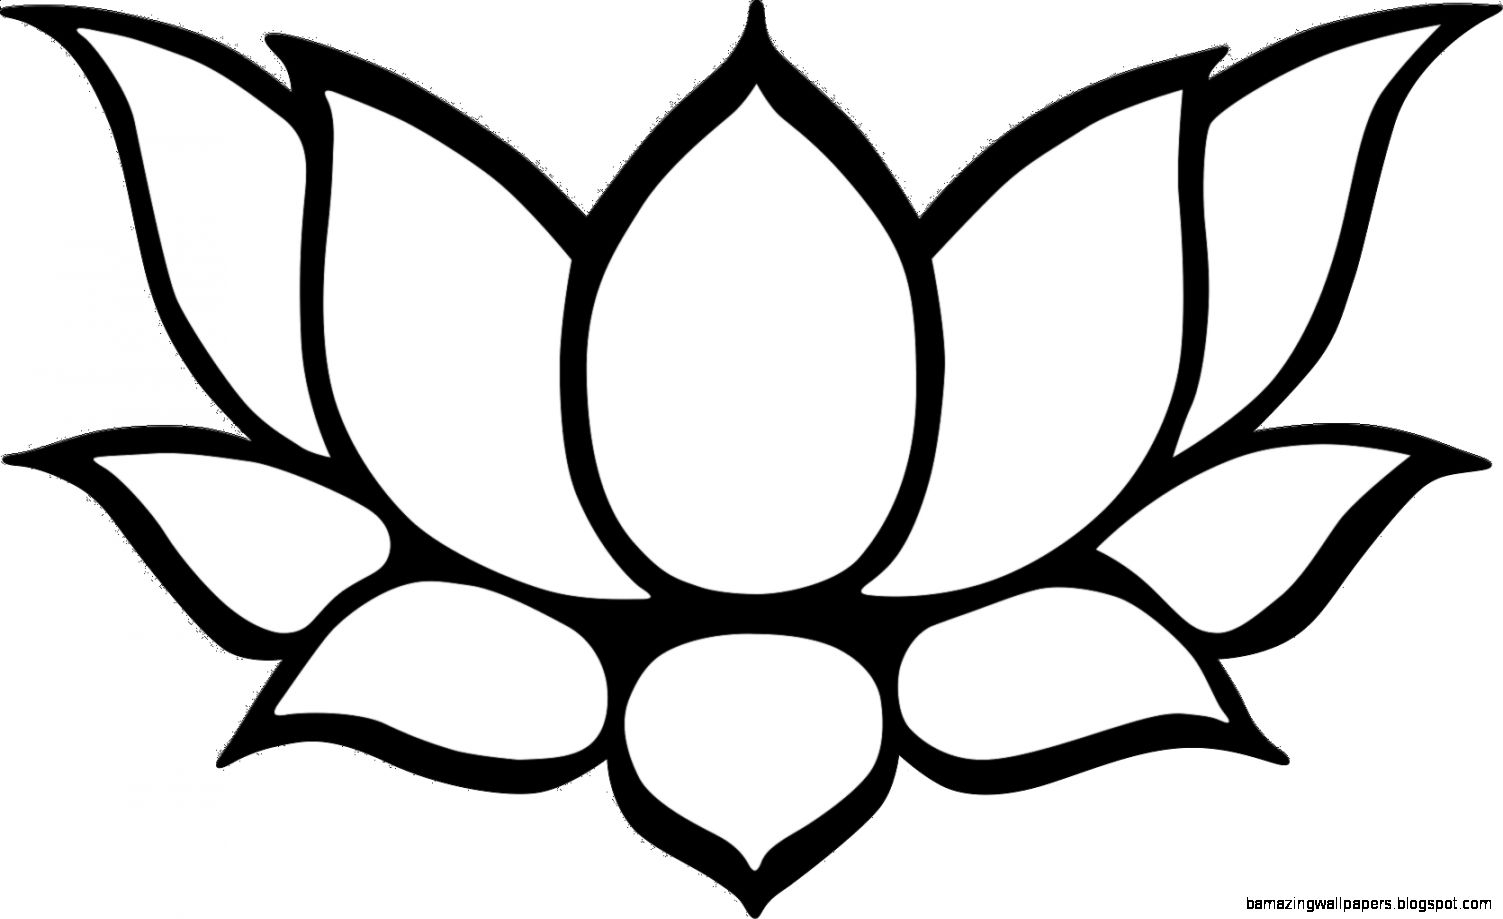 1503x919 Lotus Flower Outline Drawing Black Silhouette Outline Lotus Vector